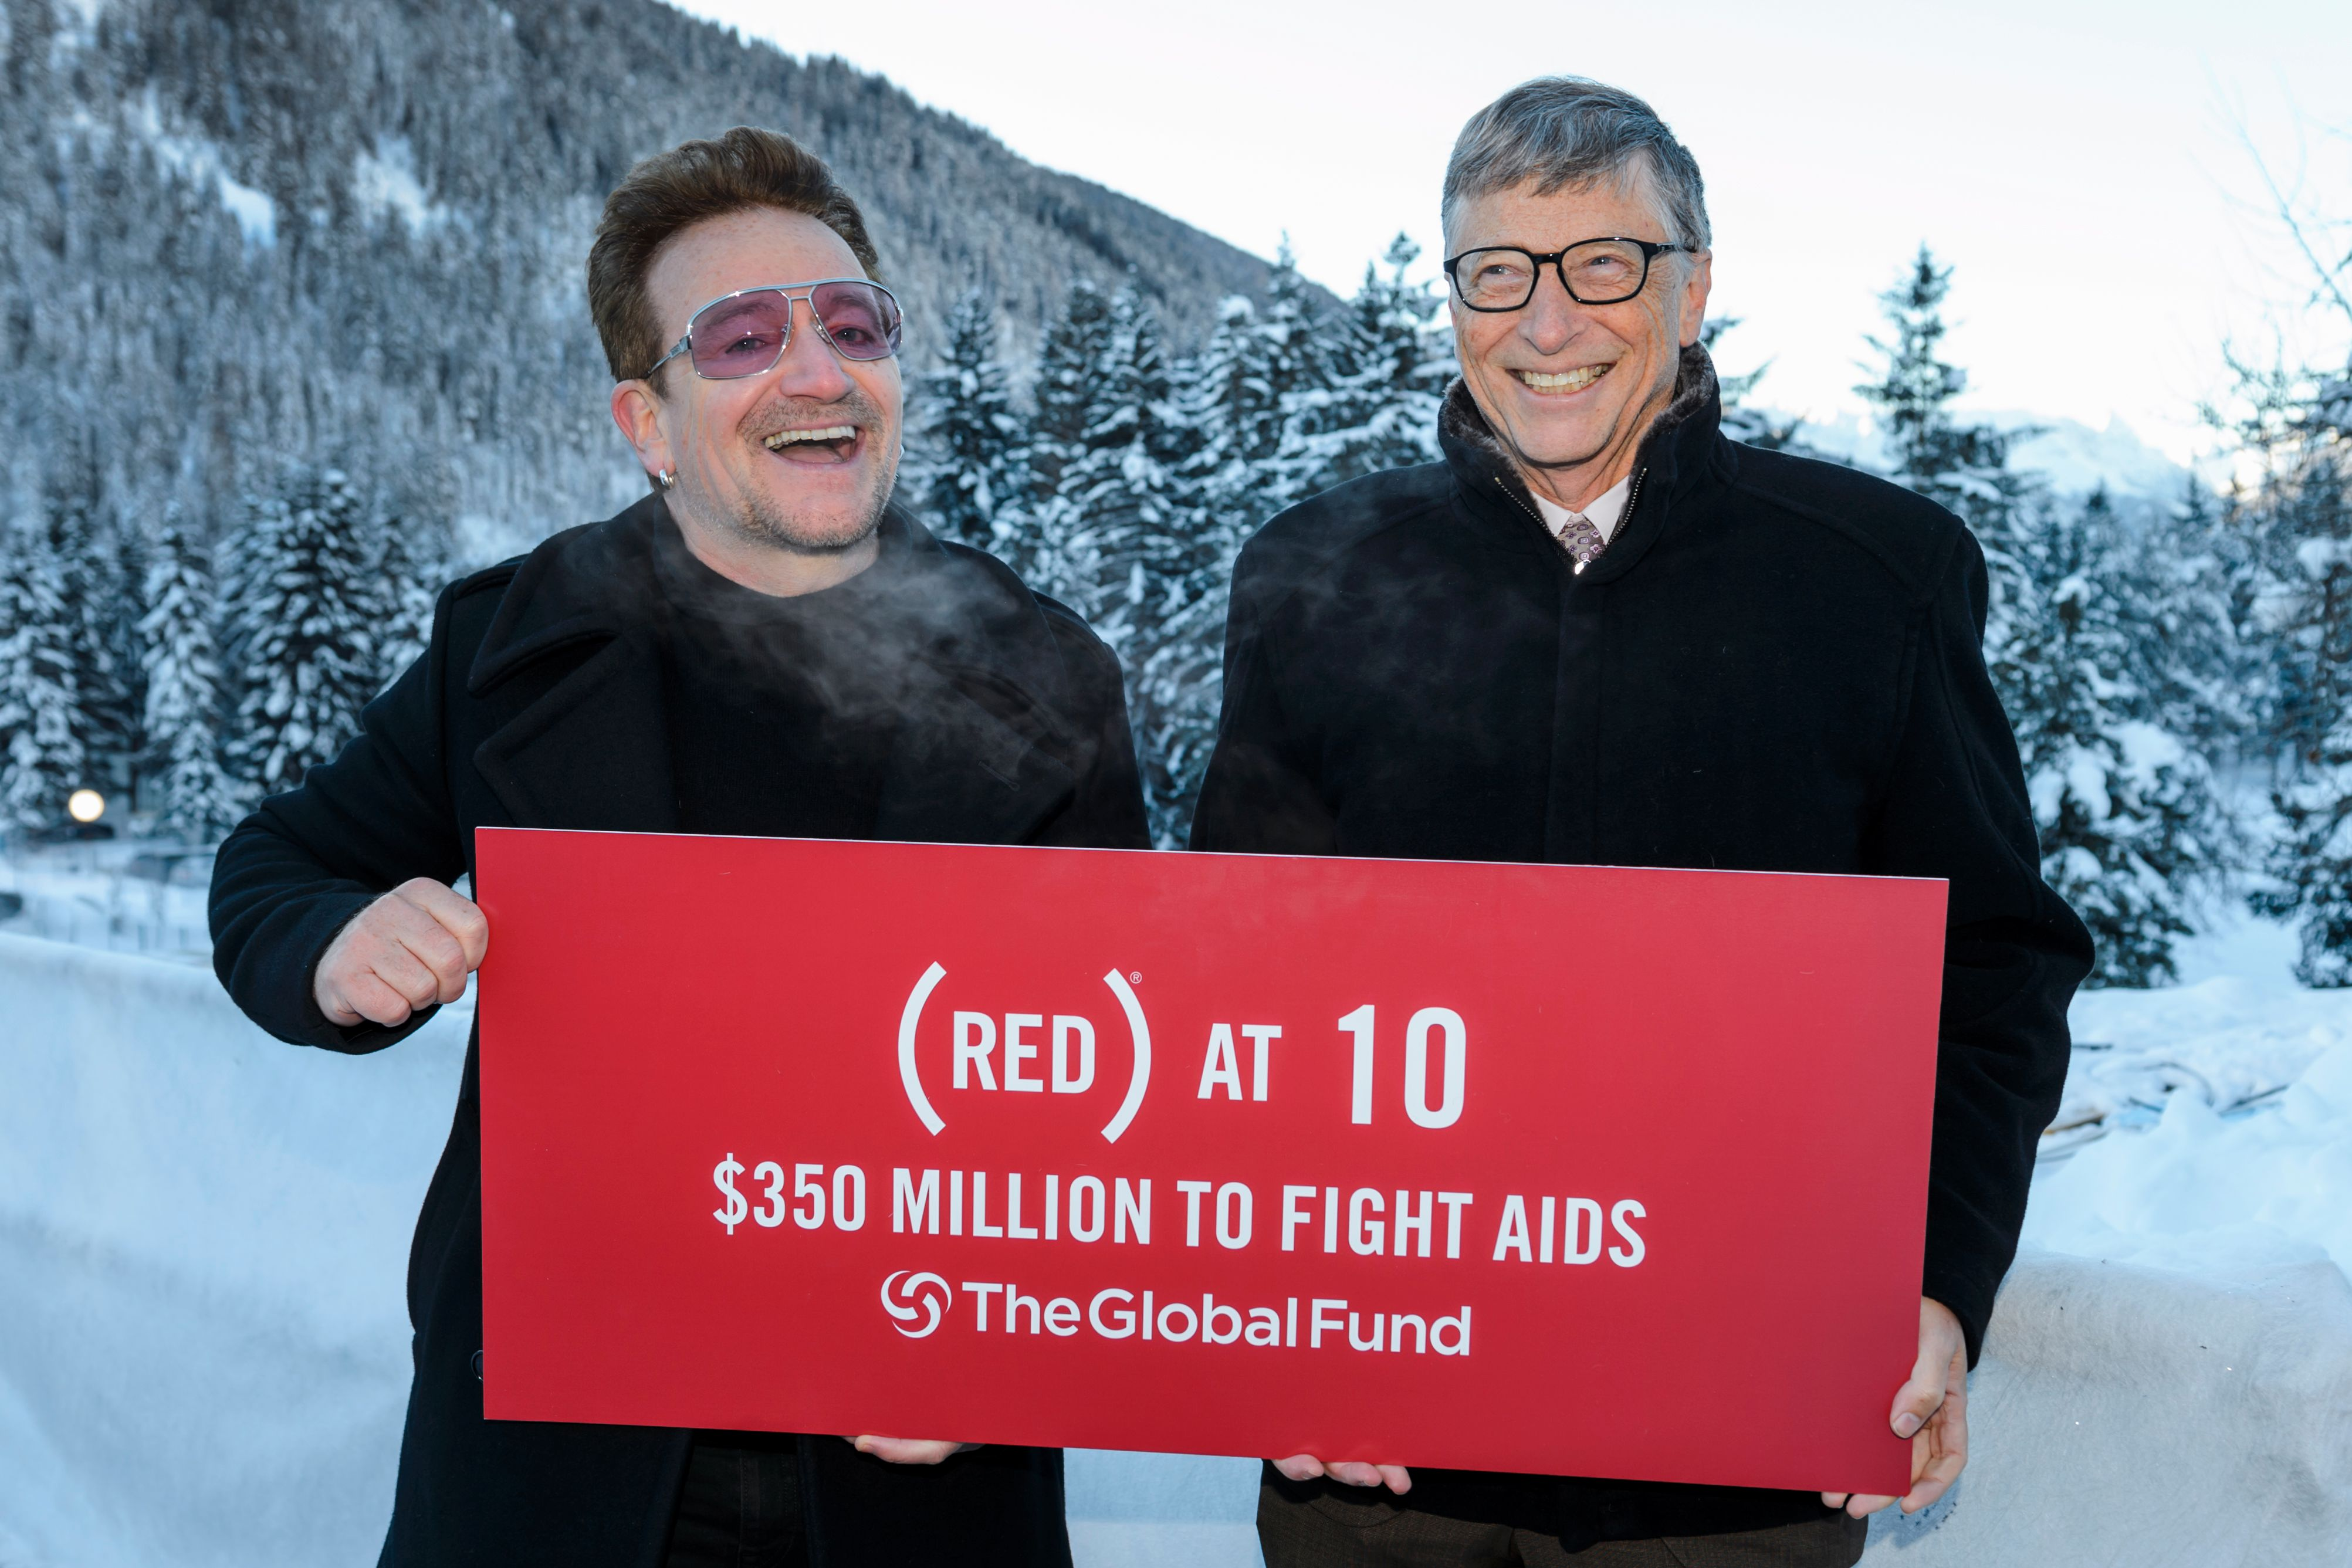 Bono poses with Bill Gates at the World Economic Forum annual meeting on January 22, 2016 in Davos